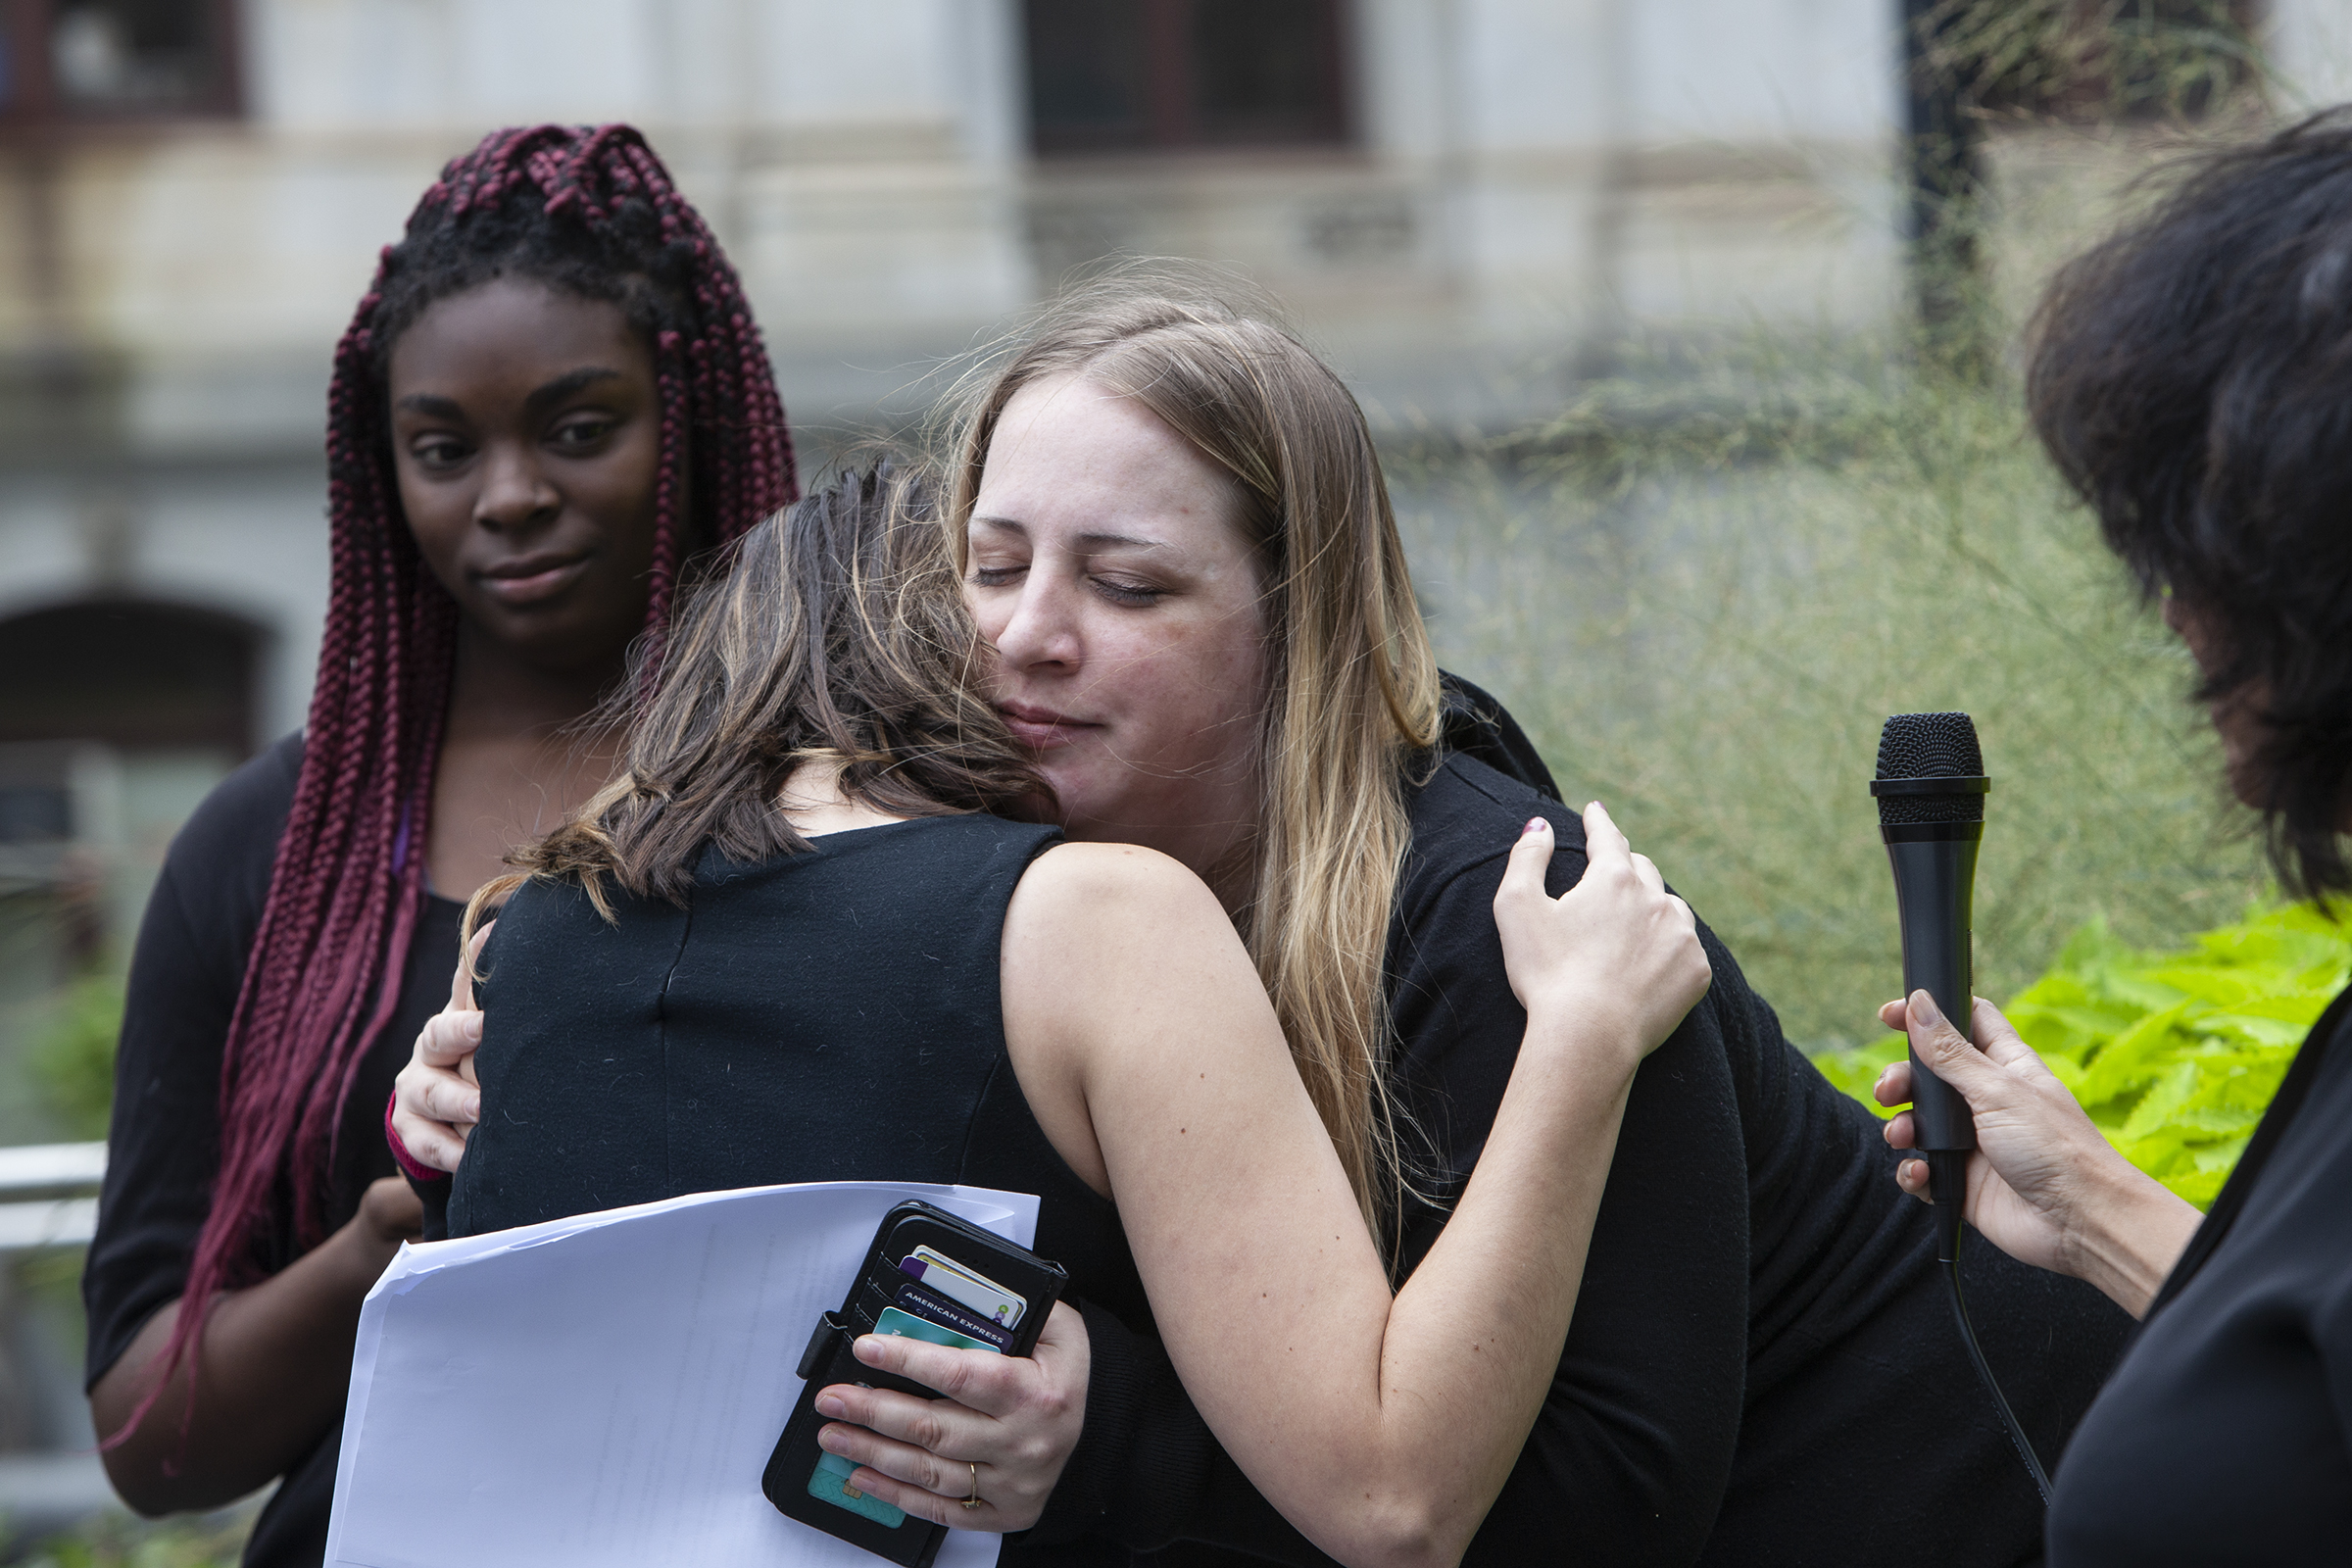 Gwen Snyder hugs Emily Woods following her speech to the crowd about her surviving sexual assault during a walkout for solidarity with Christine Blasey Ford, the Professor who accused Brett Kavanaugh of sexual assault, on Monday, Sept. 24, 2018. Survivors of sexual assault shared their stories with the crowd and called for the accountability of those in power who commit these assaults. The walkout is part of a nationwide movement that was called for by Tarana Burke, the founder of the #MeToo movement.